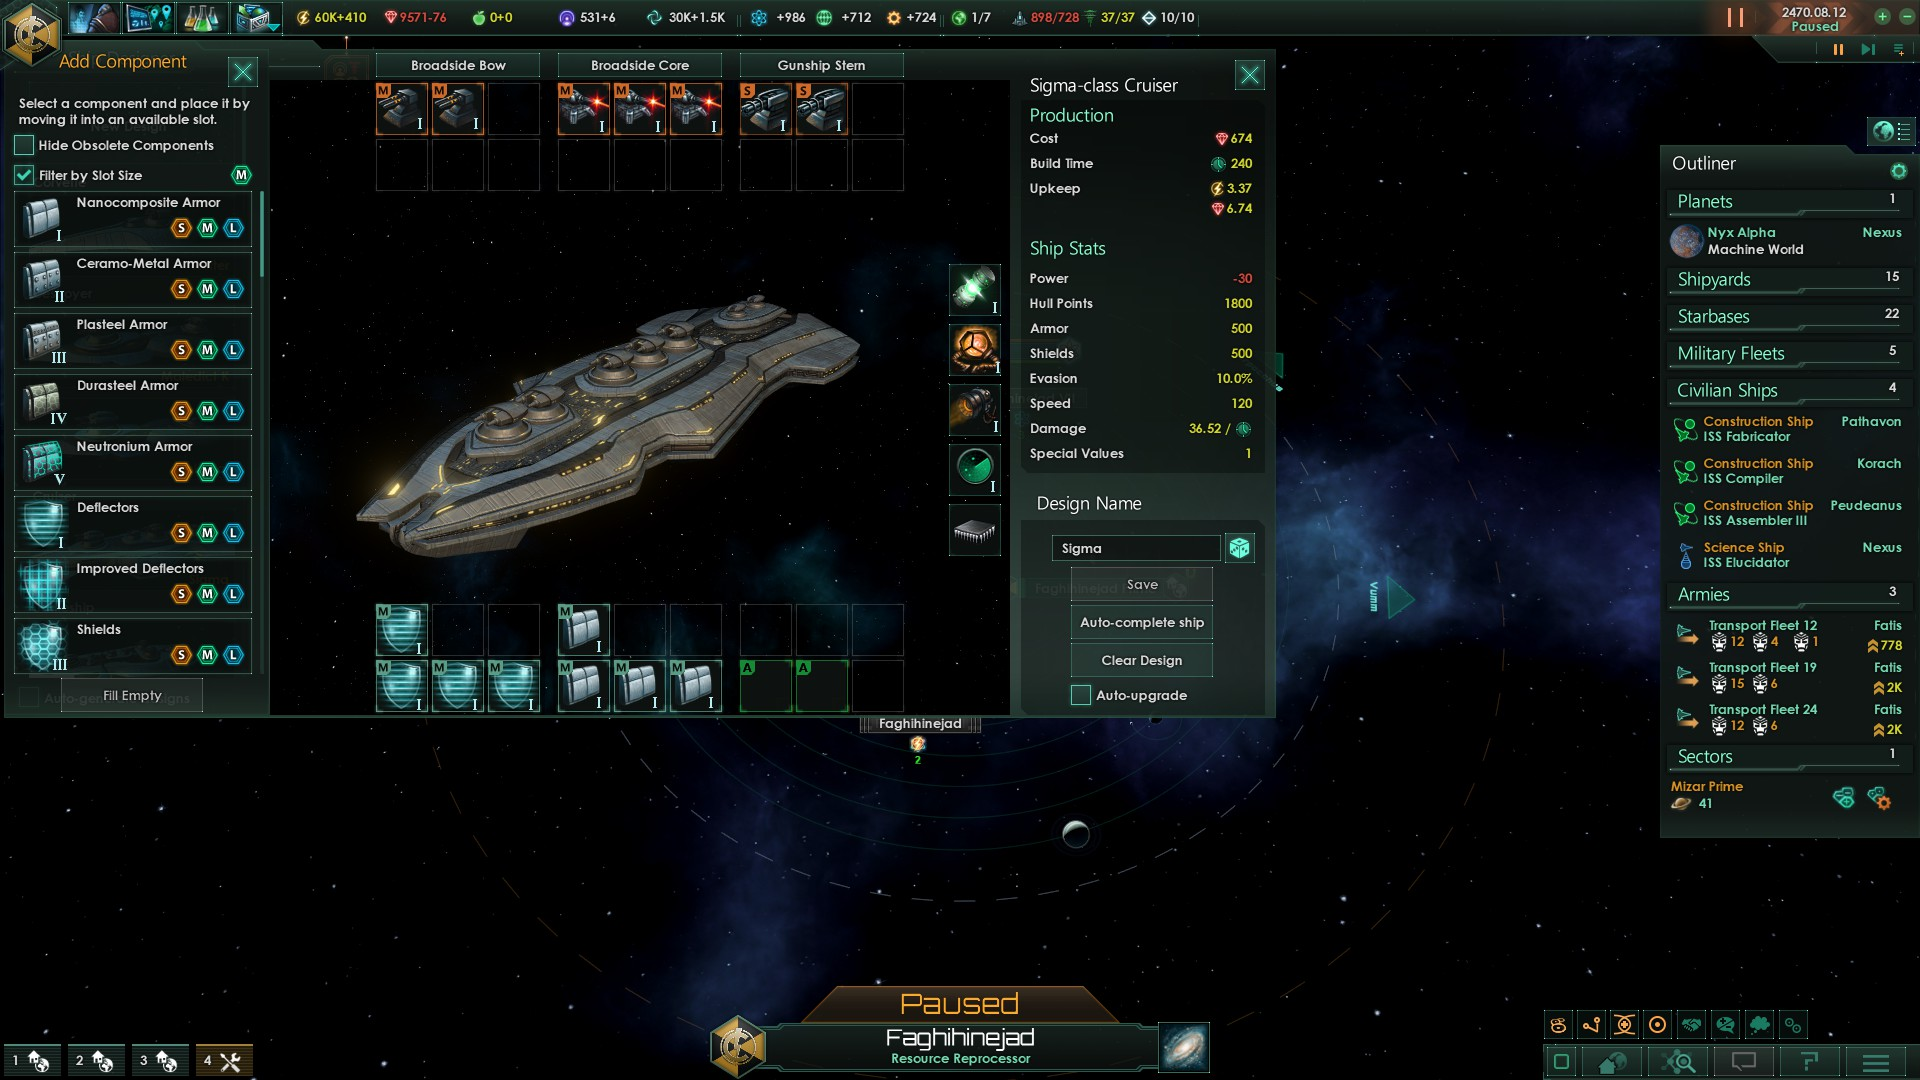 stellaris 2.0 how to make vassals